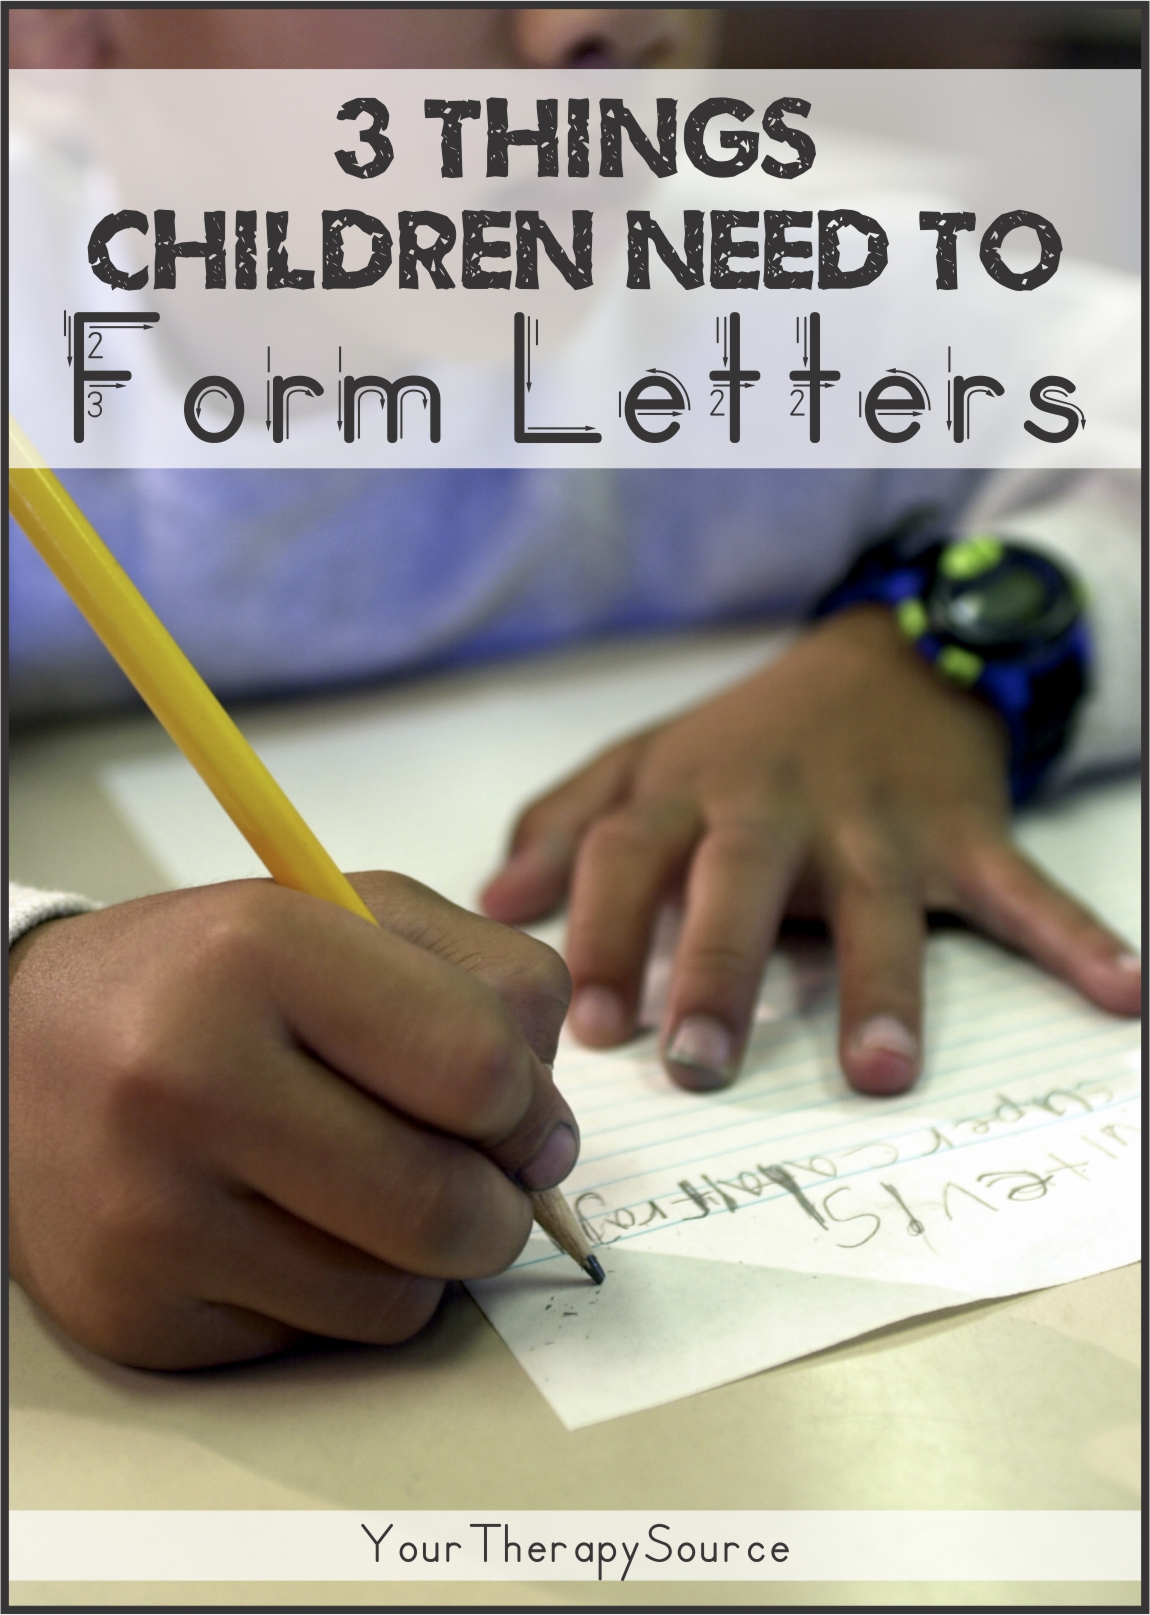 The steps to learning how to write letters for children is actually quite complex. The skill of handwriting requires many motor learning experiences prior to the actual act of writing letters.